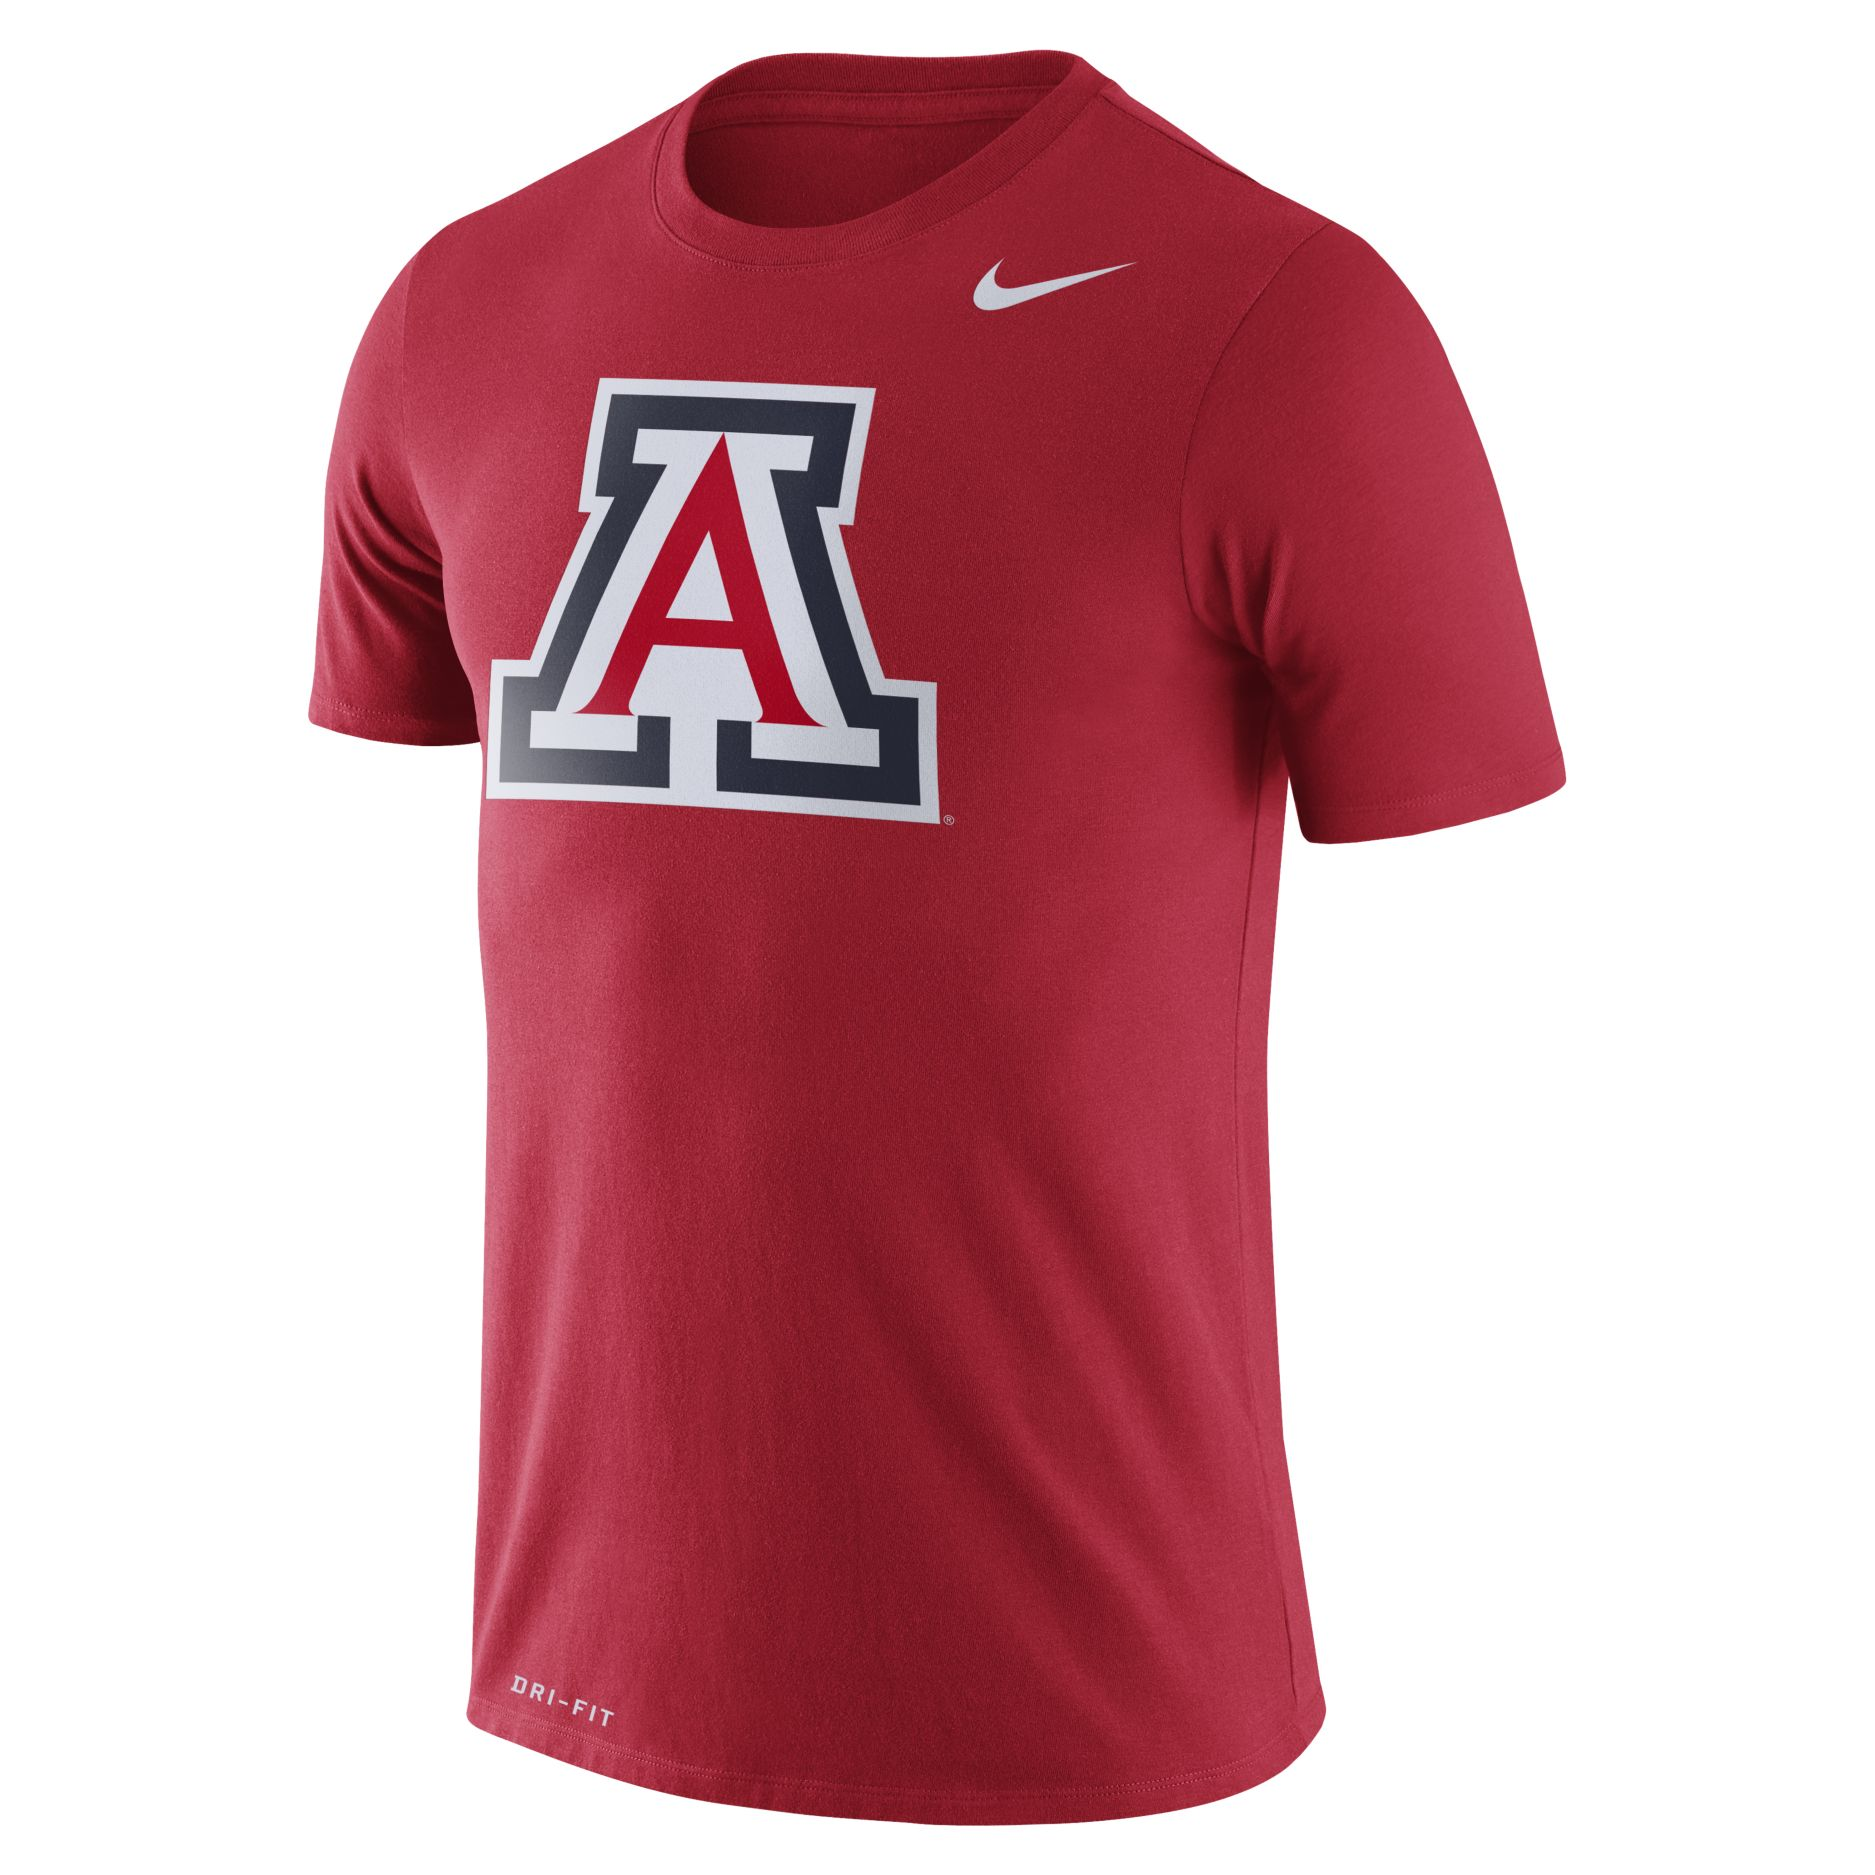 a17e2bee Image For Nike: Arizona Dri-FIT Legend T-Shirt - Red